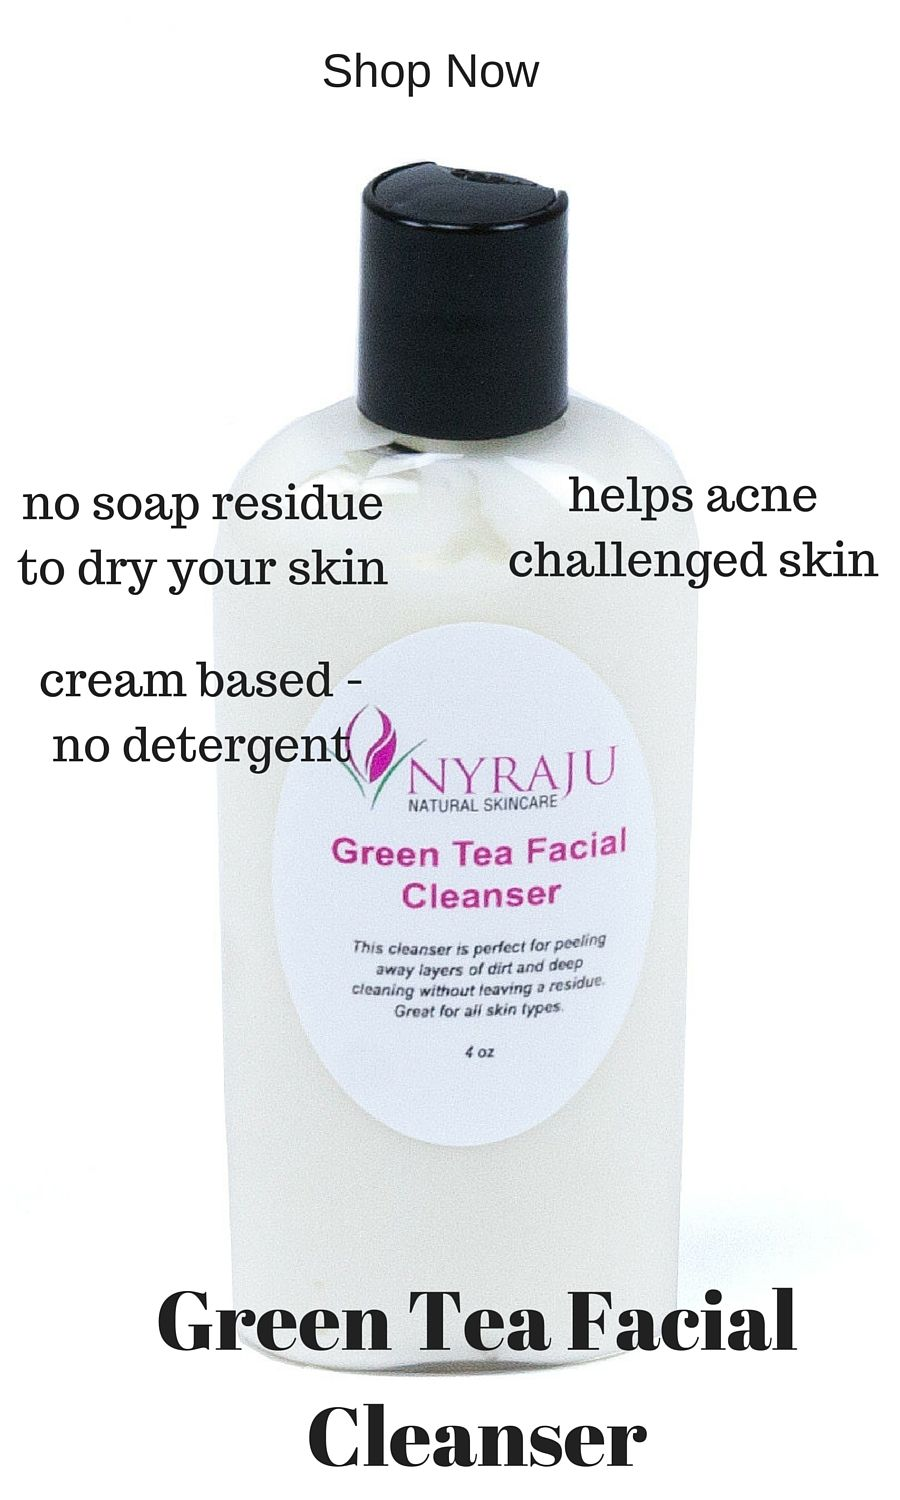 Pin by Candra McCaslin on Facial cleansing!! Facial